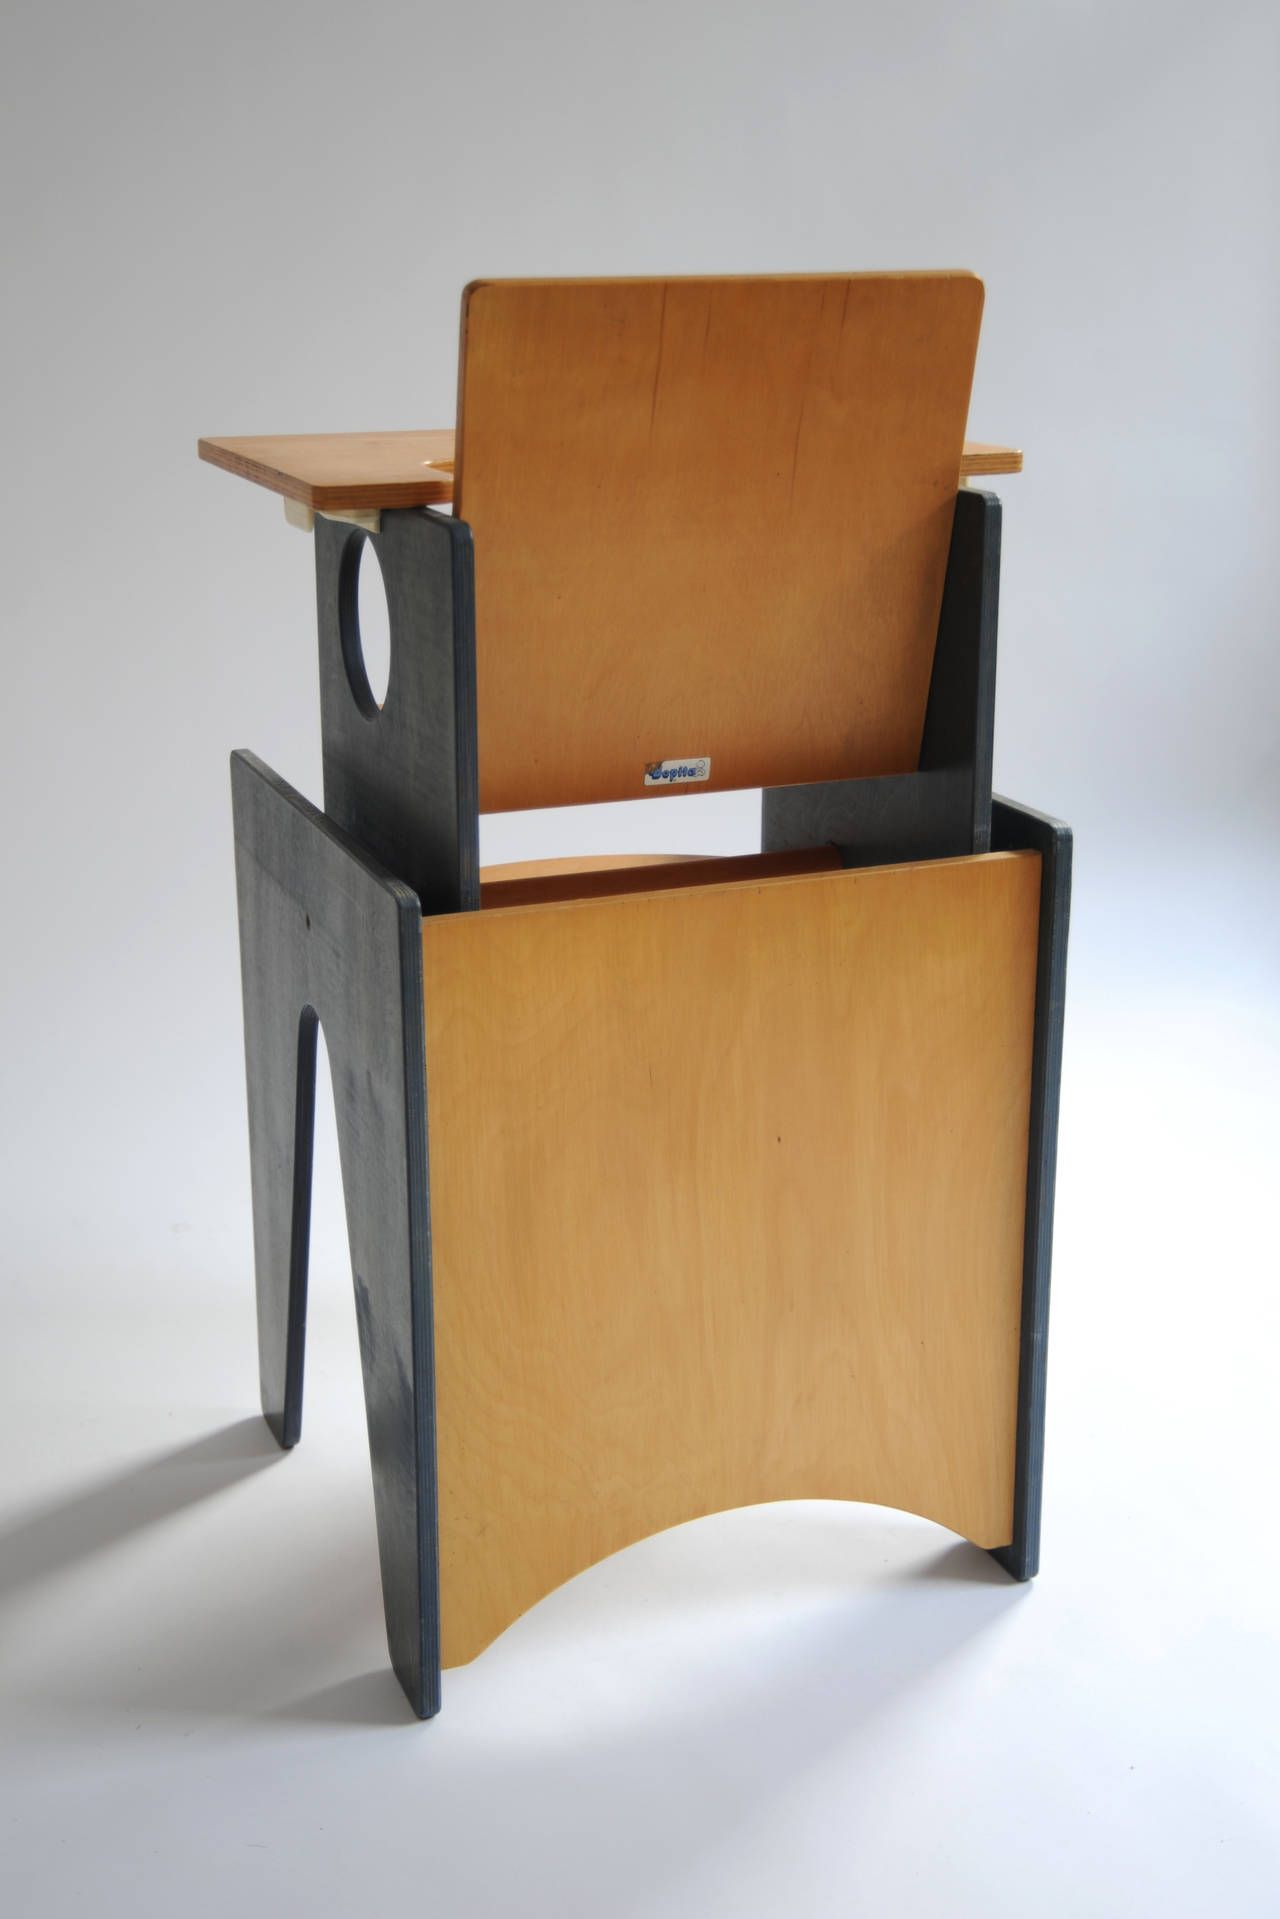 multifunctional desk and chair set or high chair by bopita circa